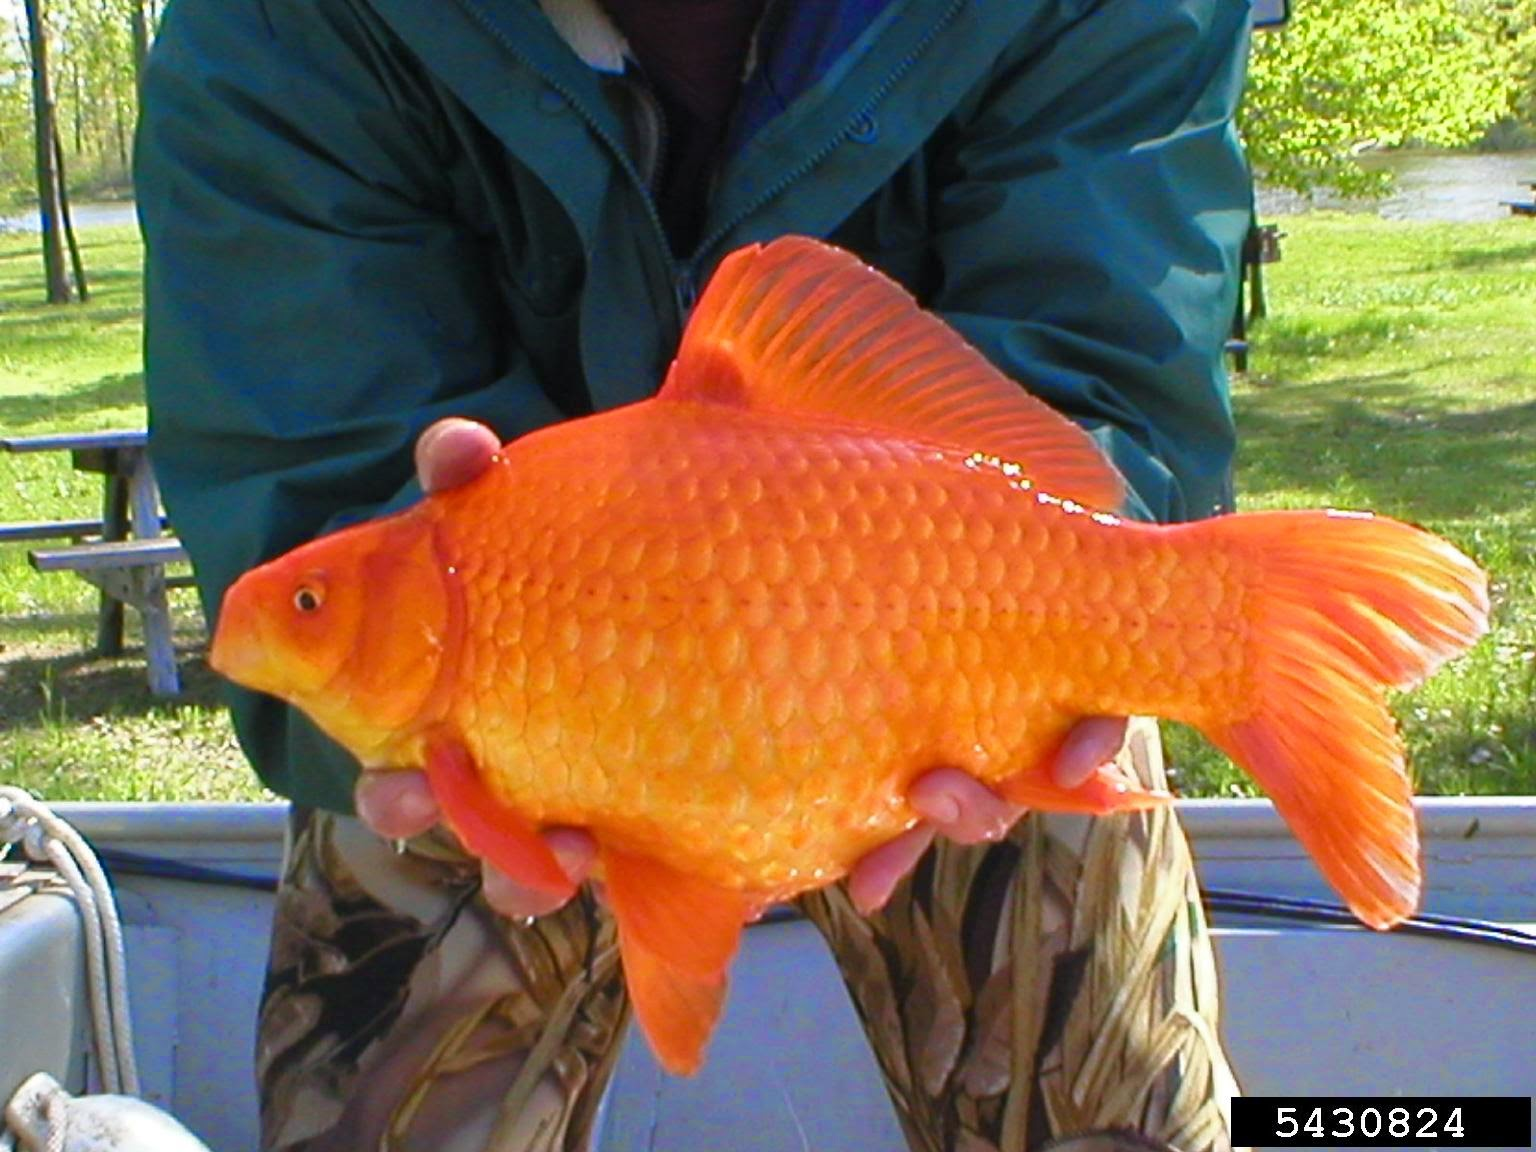 Center for invasive species and ecosystem health for Garden pond fish species